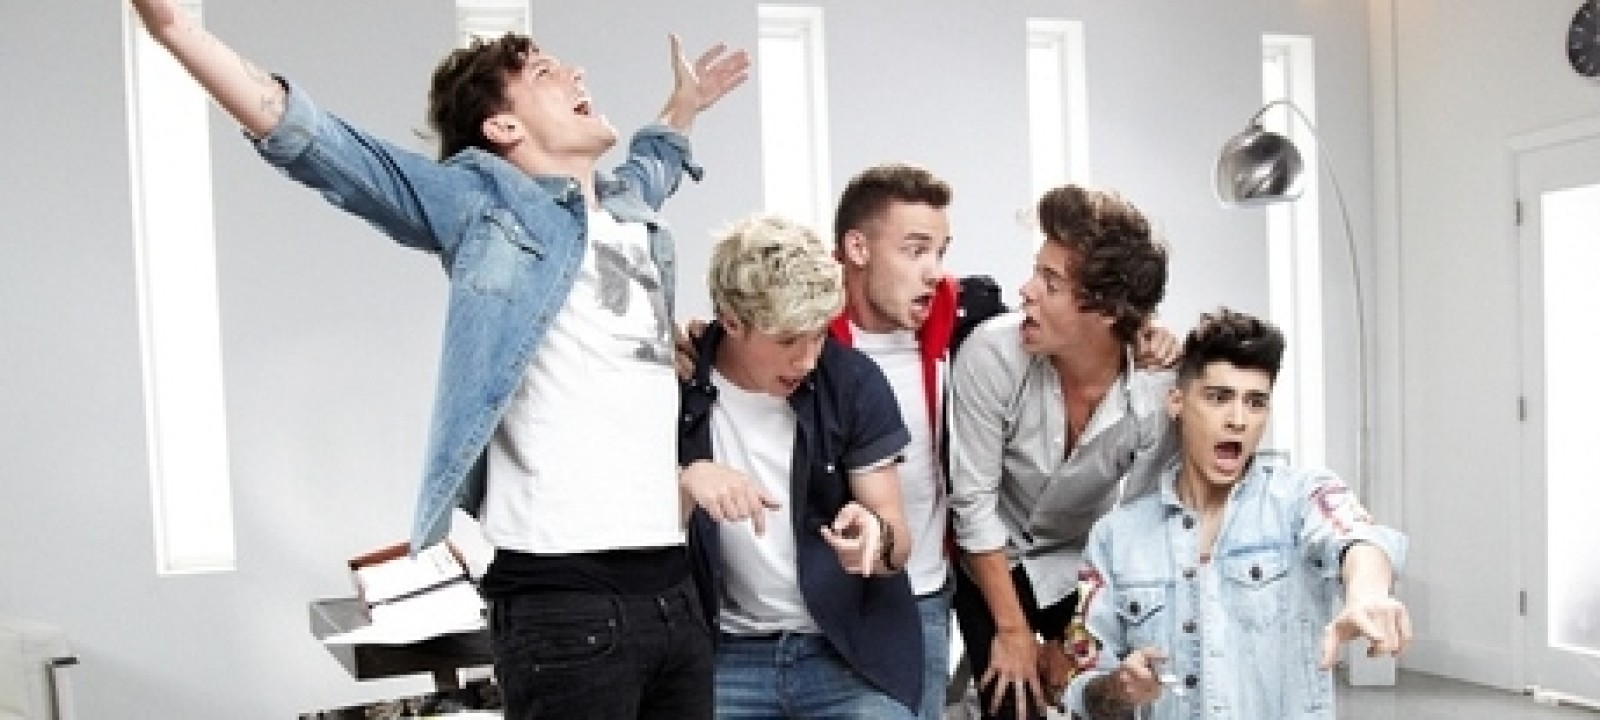 One Direction in 'Best Song Ever'